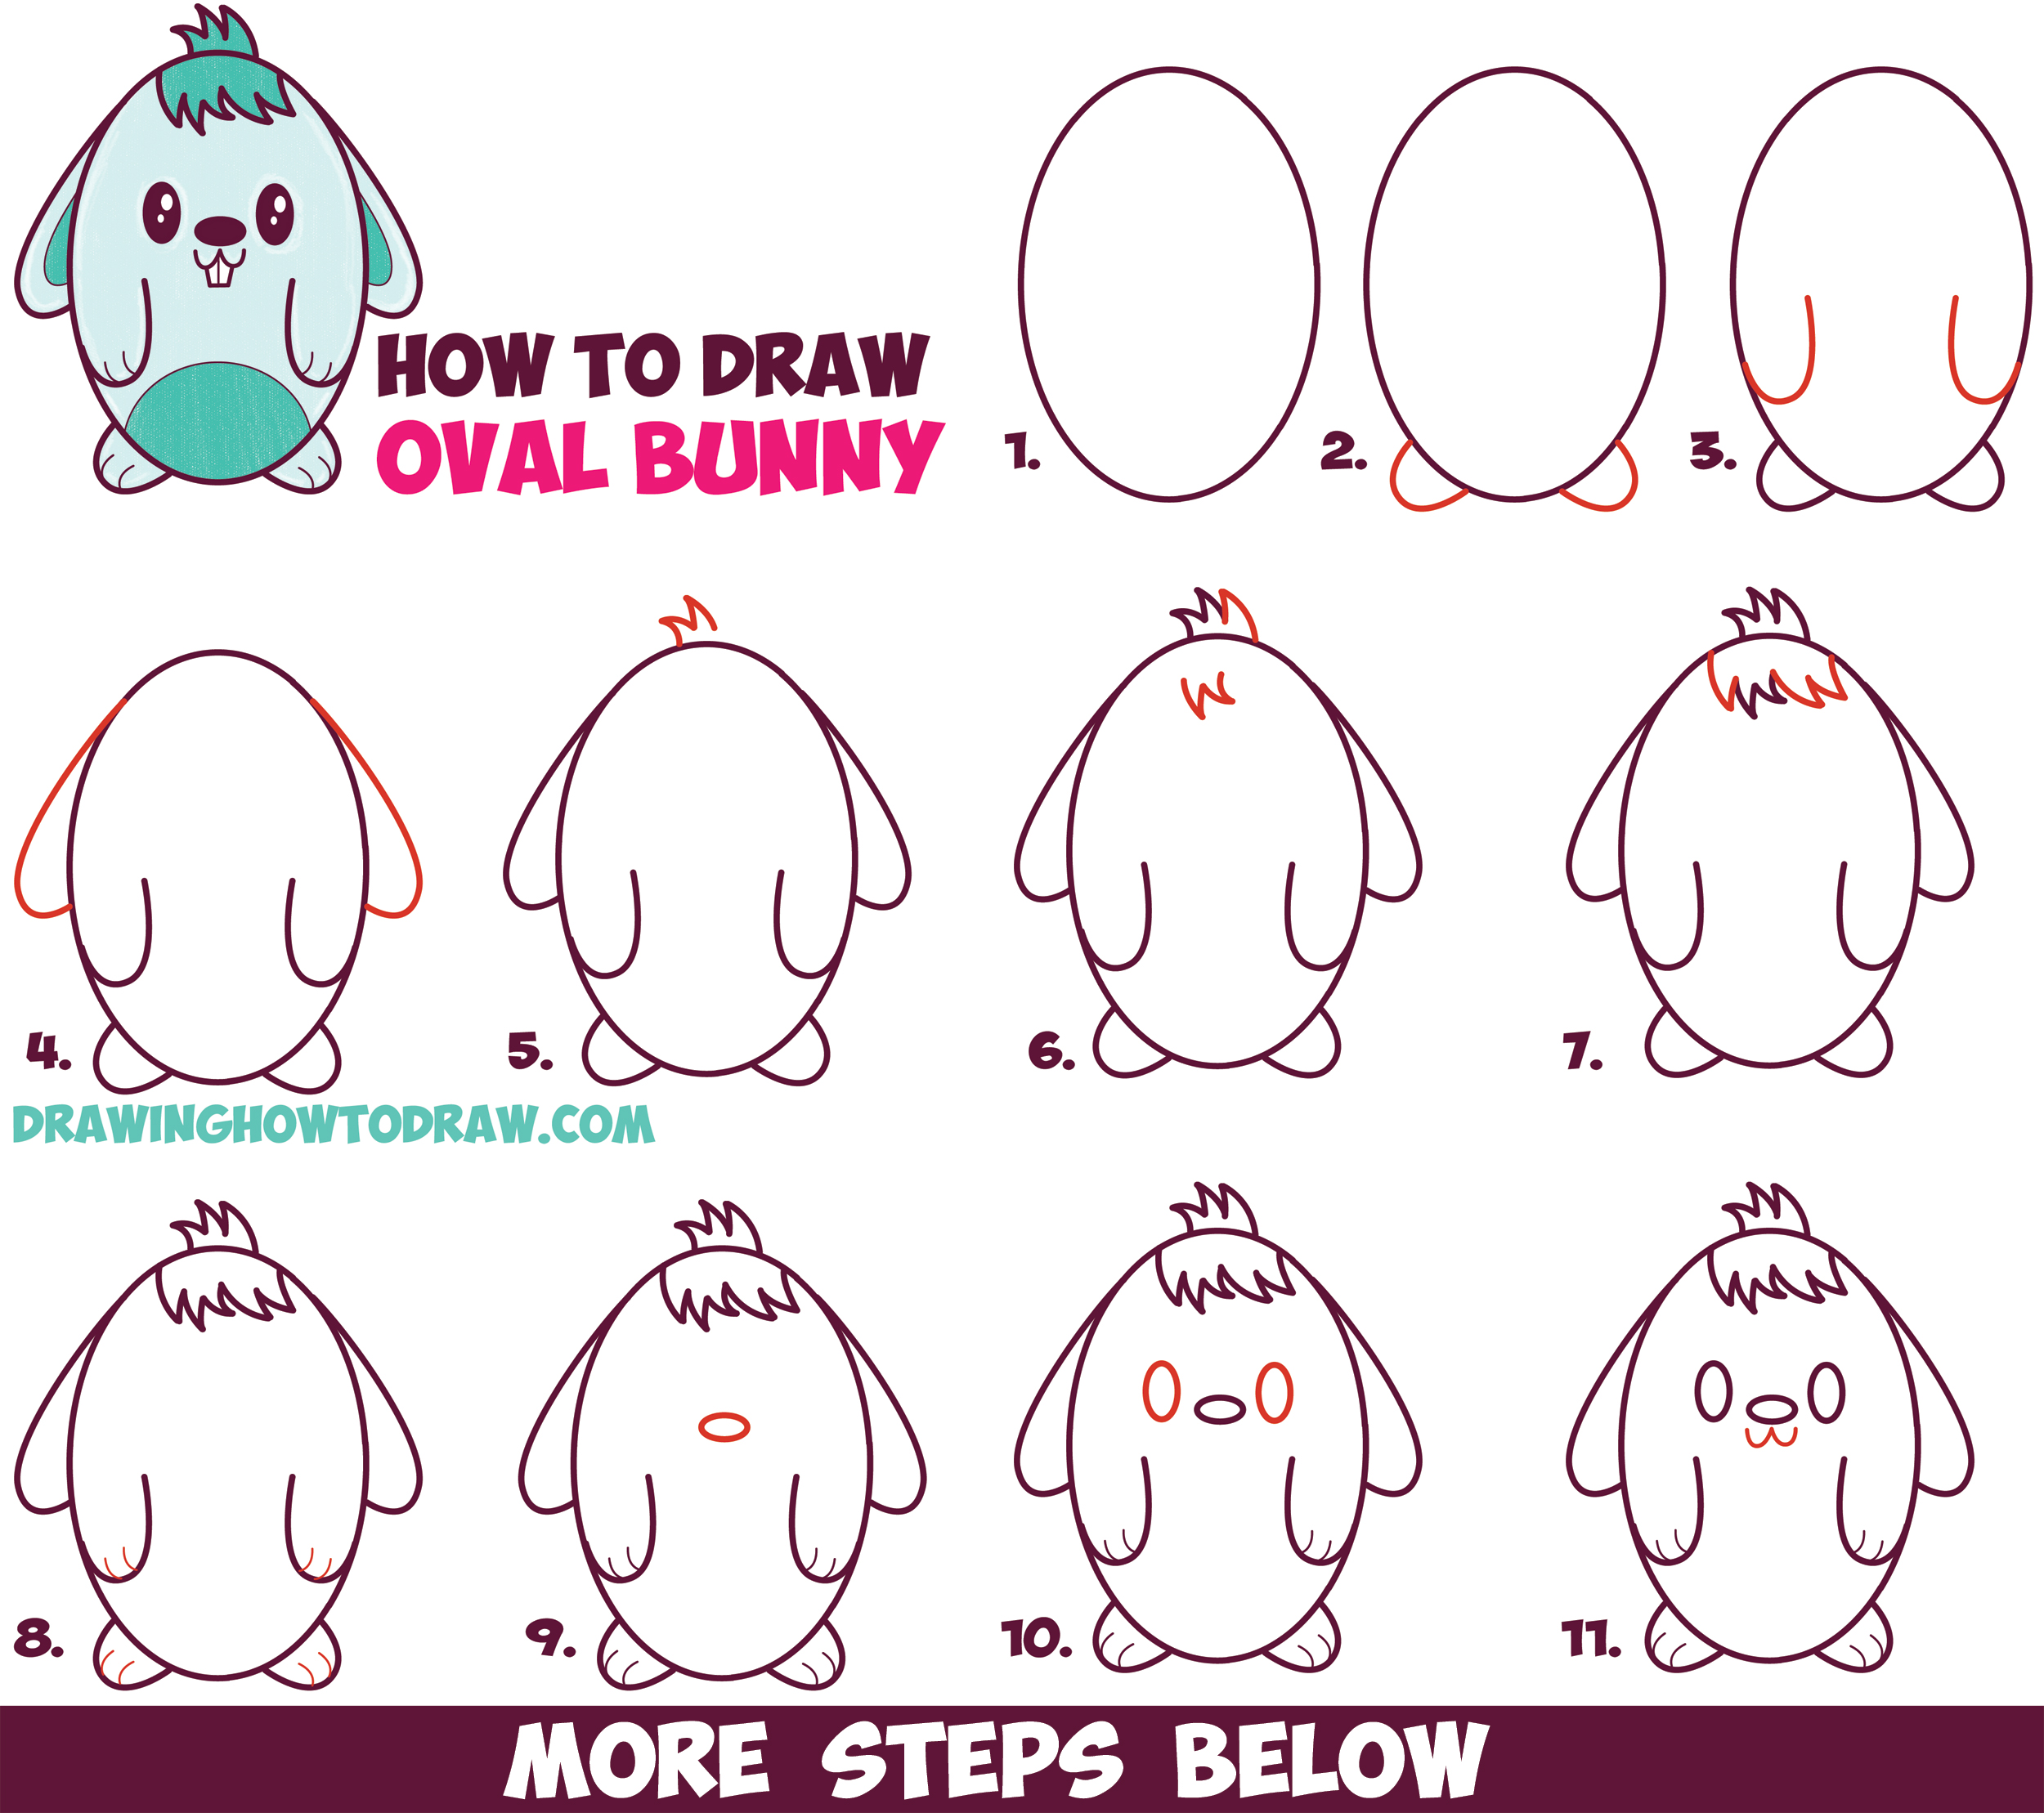 How To Draw A Cute Cartoon Bunny Rabbit From An Oval  Easy Step By Step